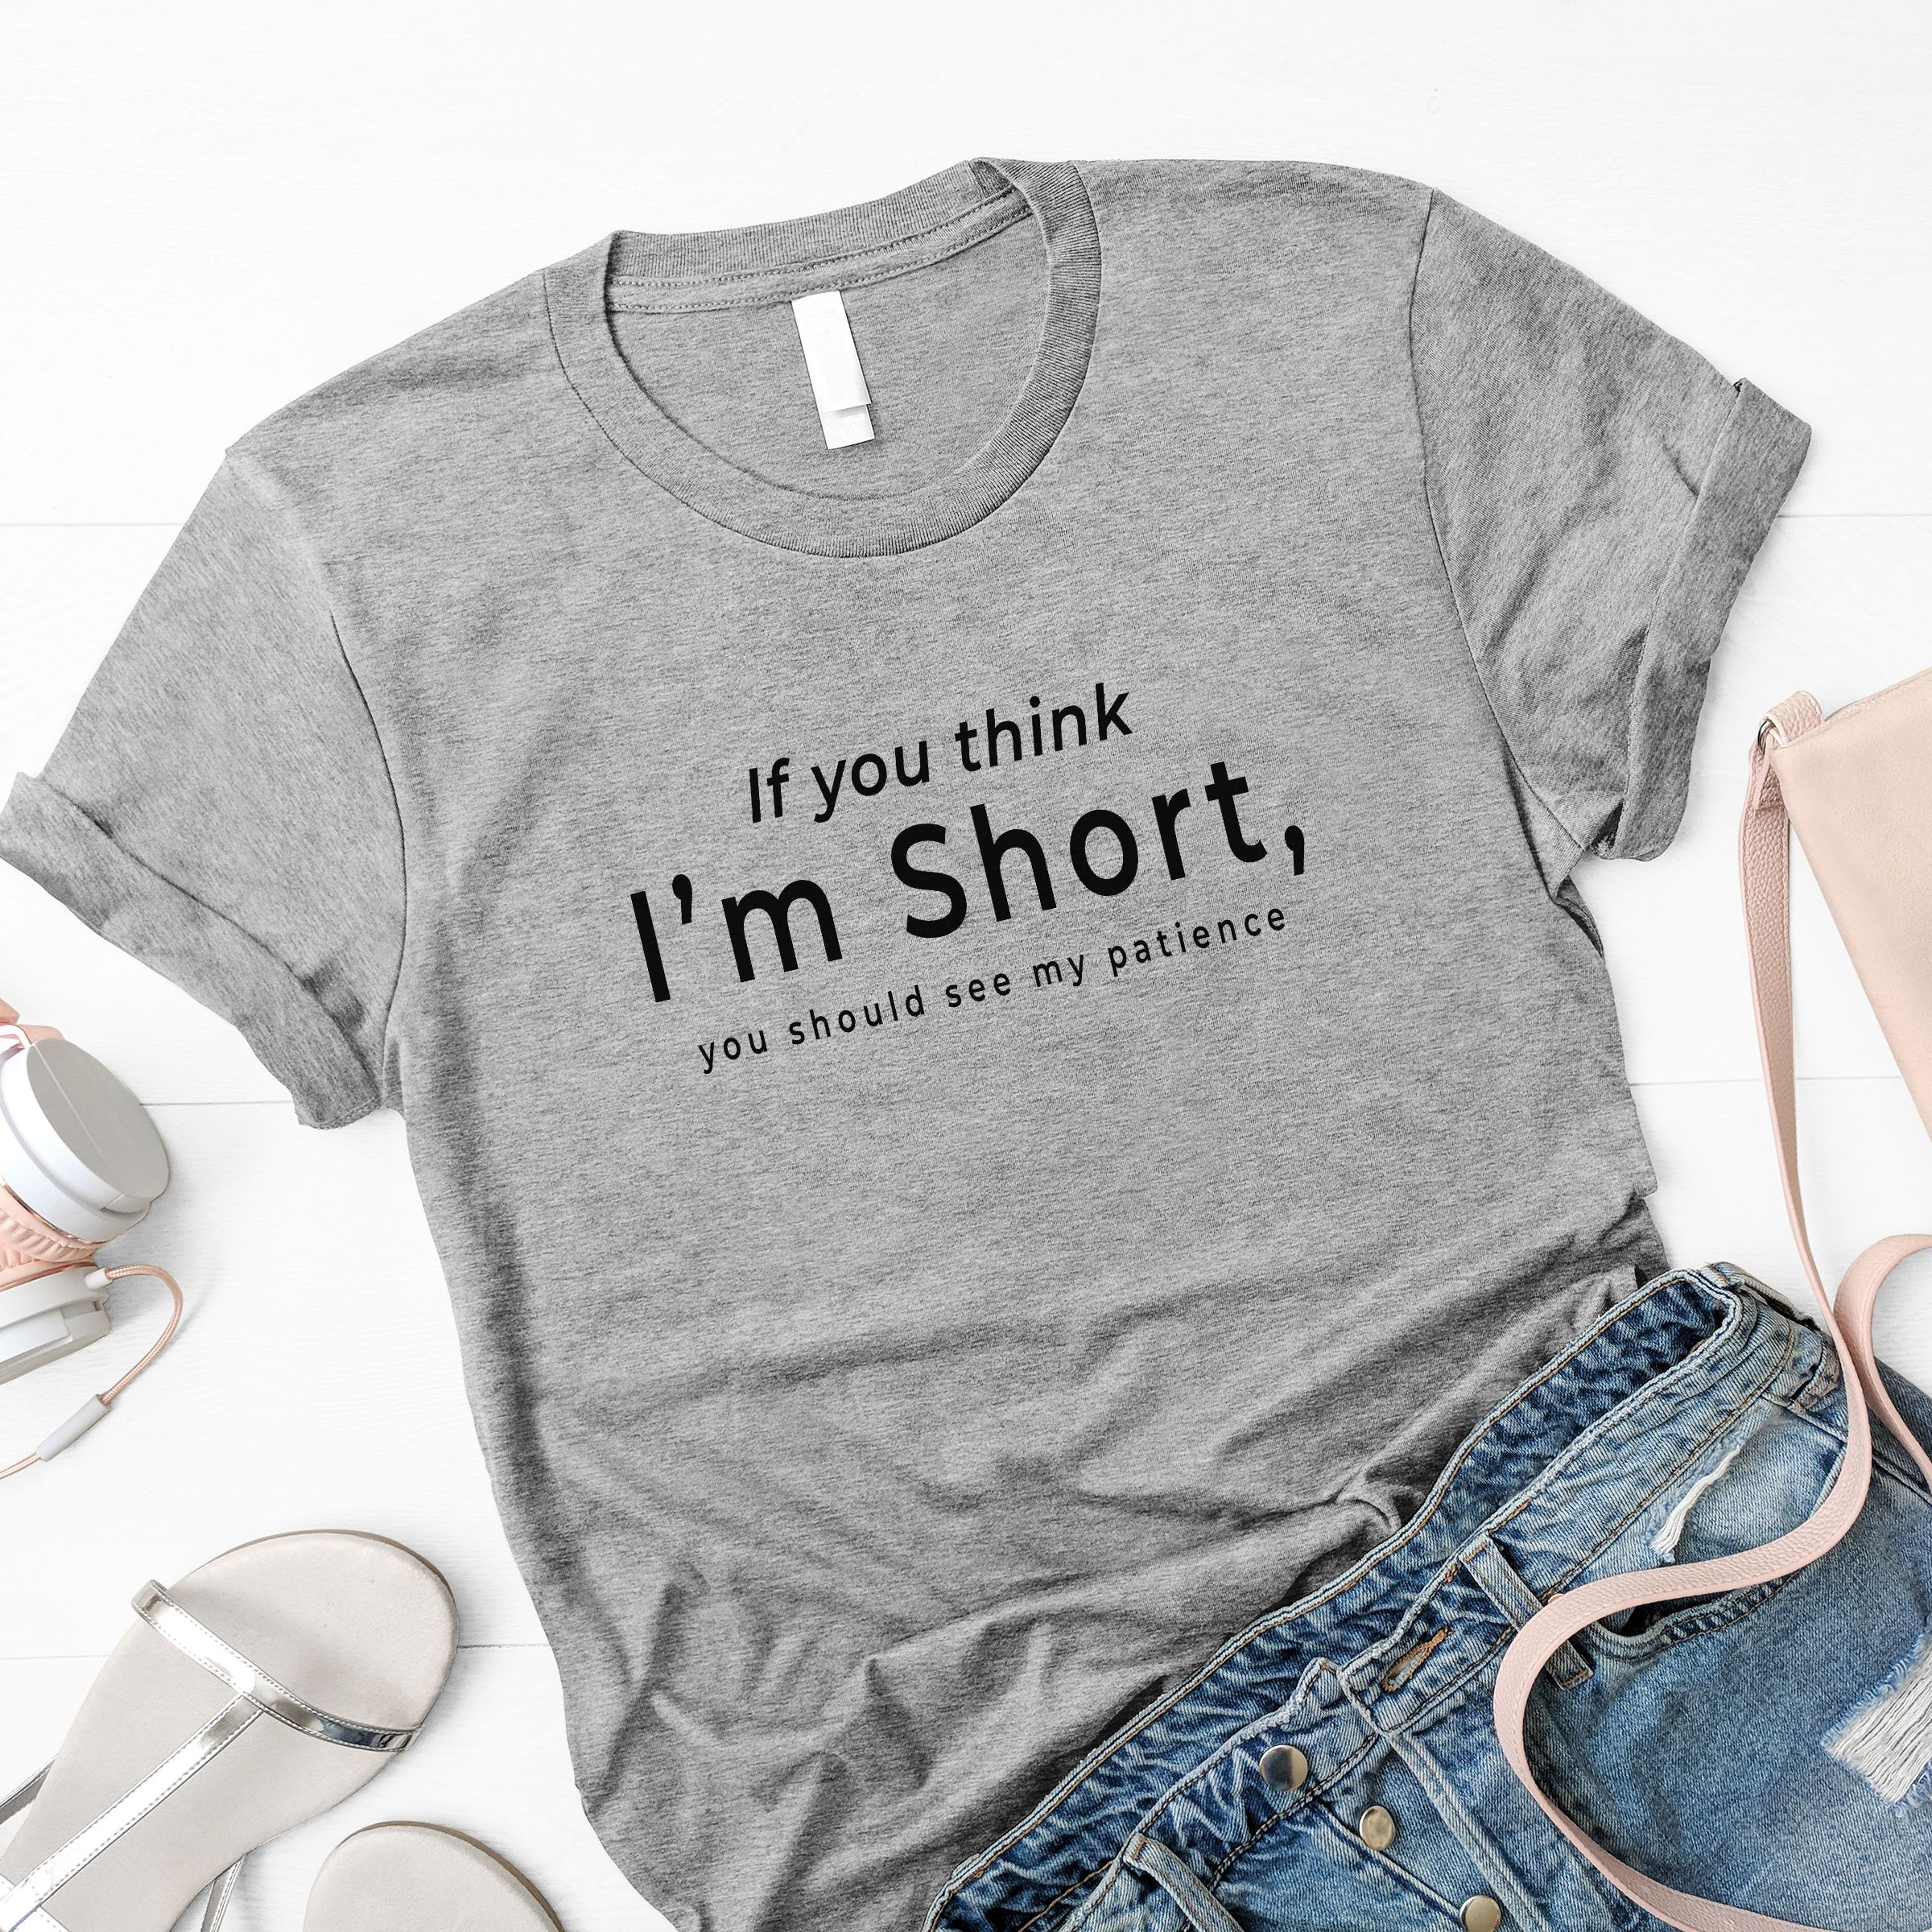 LADY OF LEISURE CROP TOP T SHIRT WOMENS FUNNY HIPSTER SLOGAN LADIES CUTE SUMMER